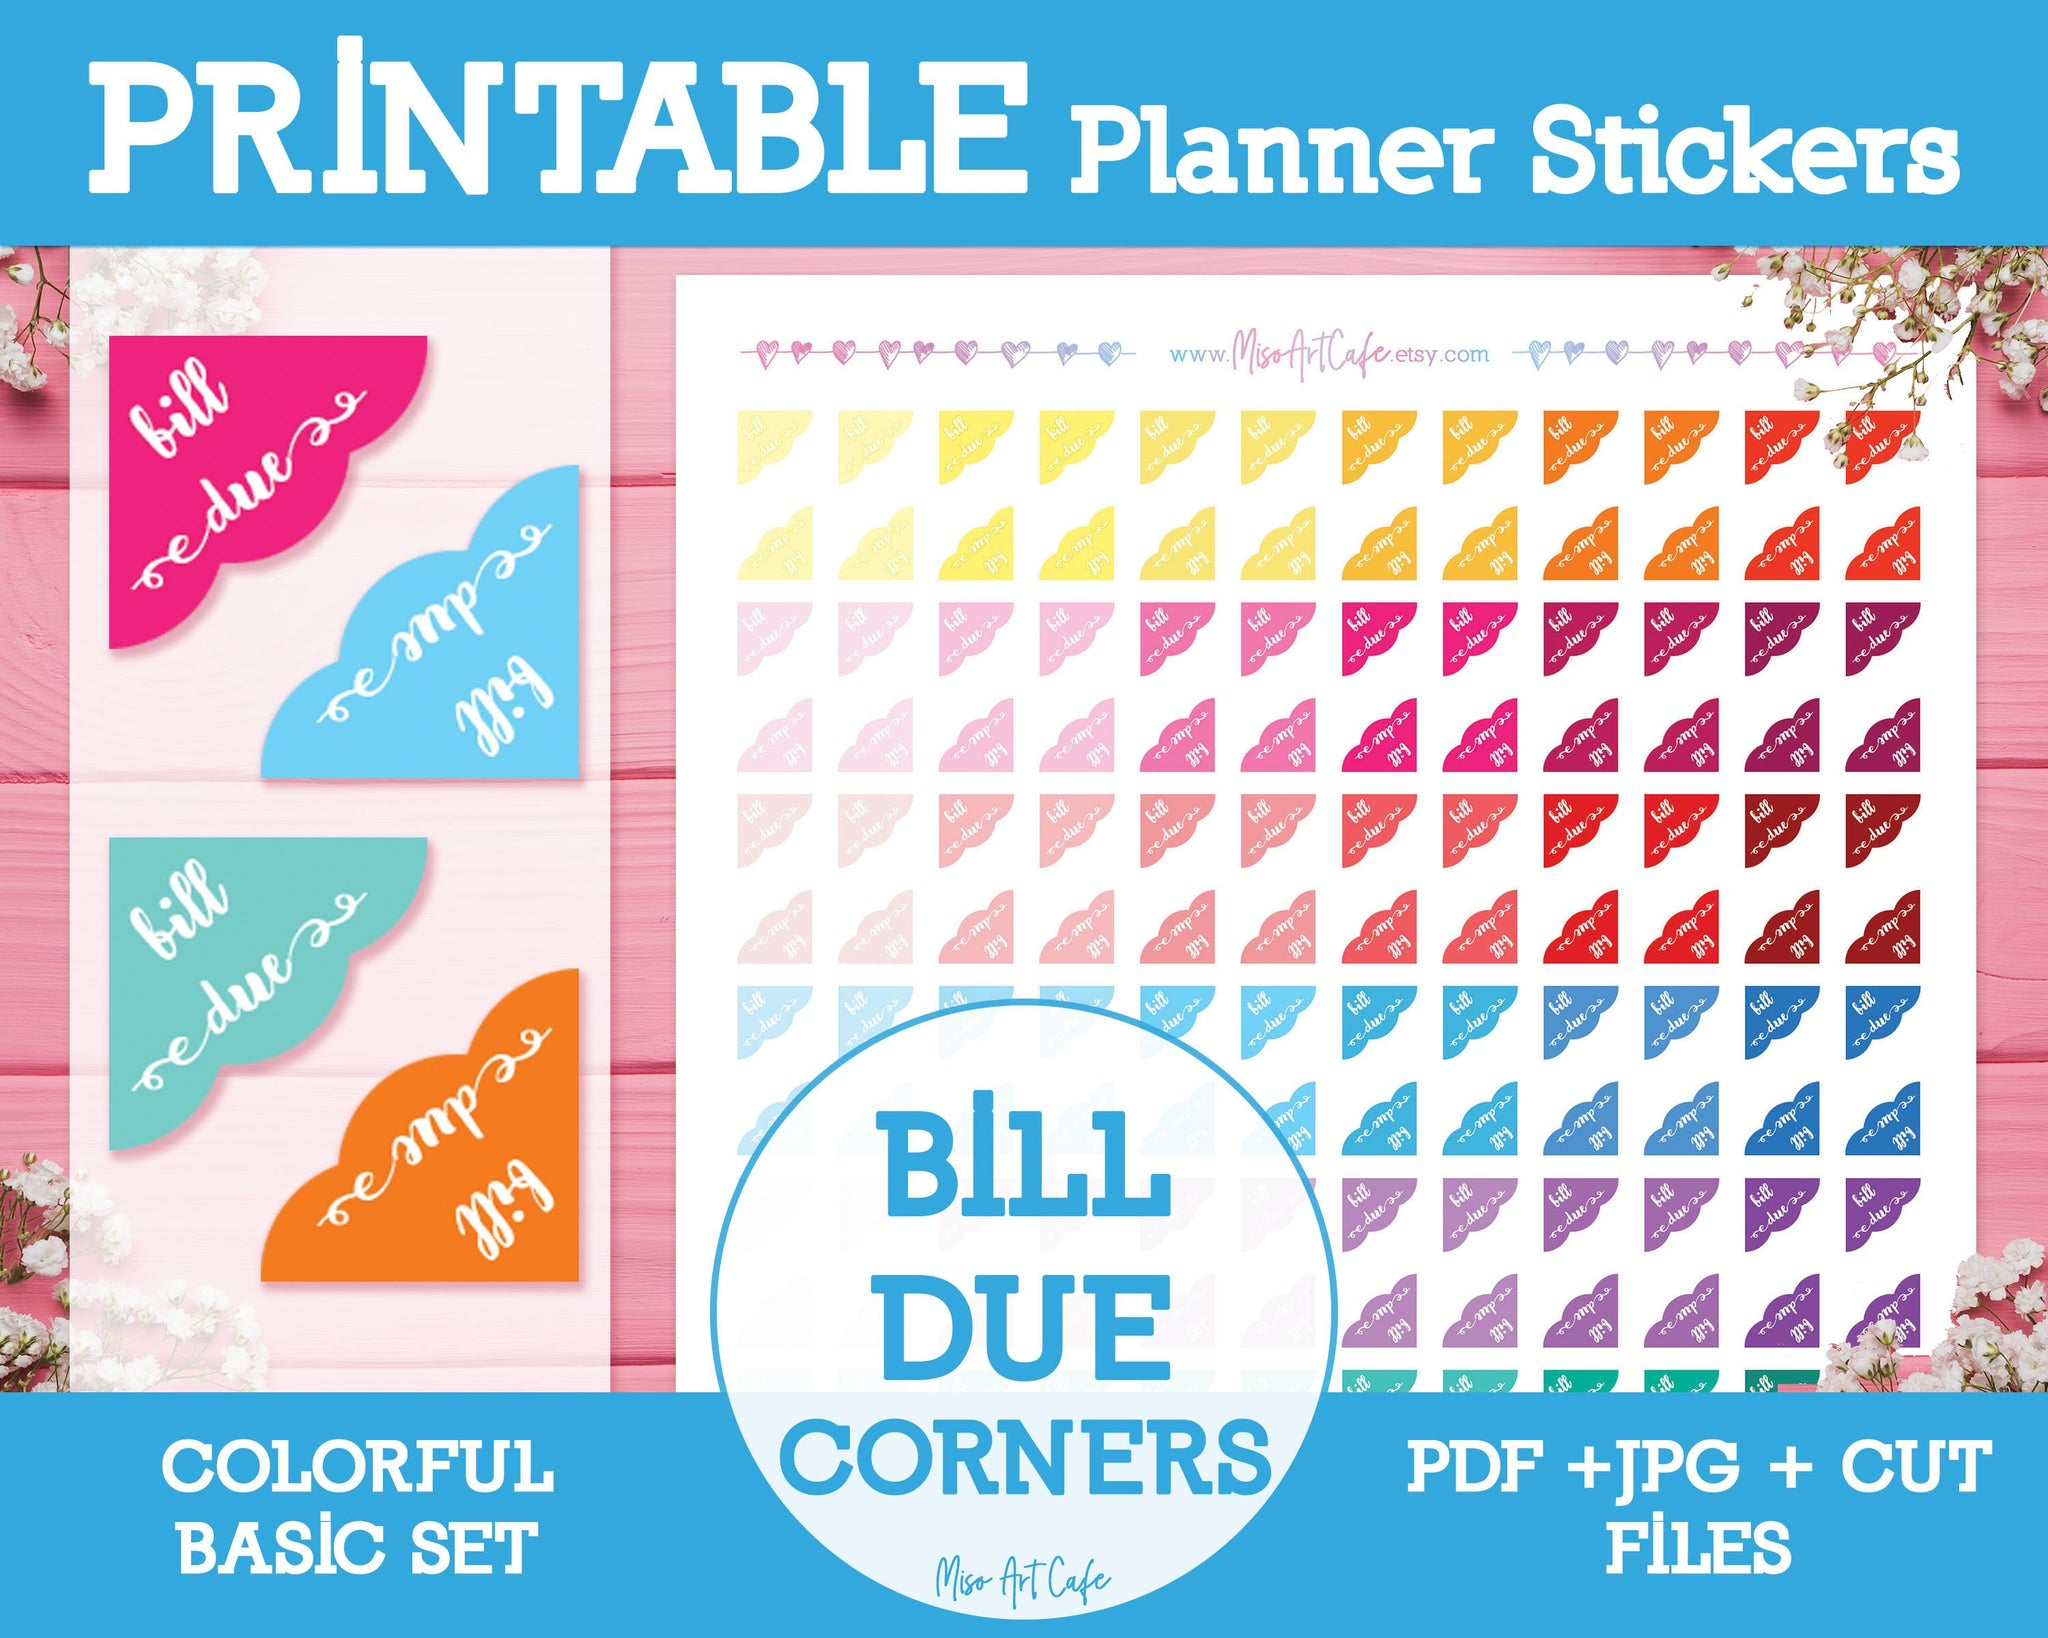 Printable Bill Due Corners - Colorful Basic Planner Stickers - Miso Art Cafe